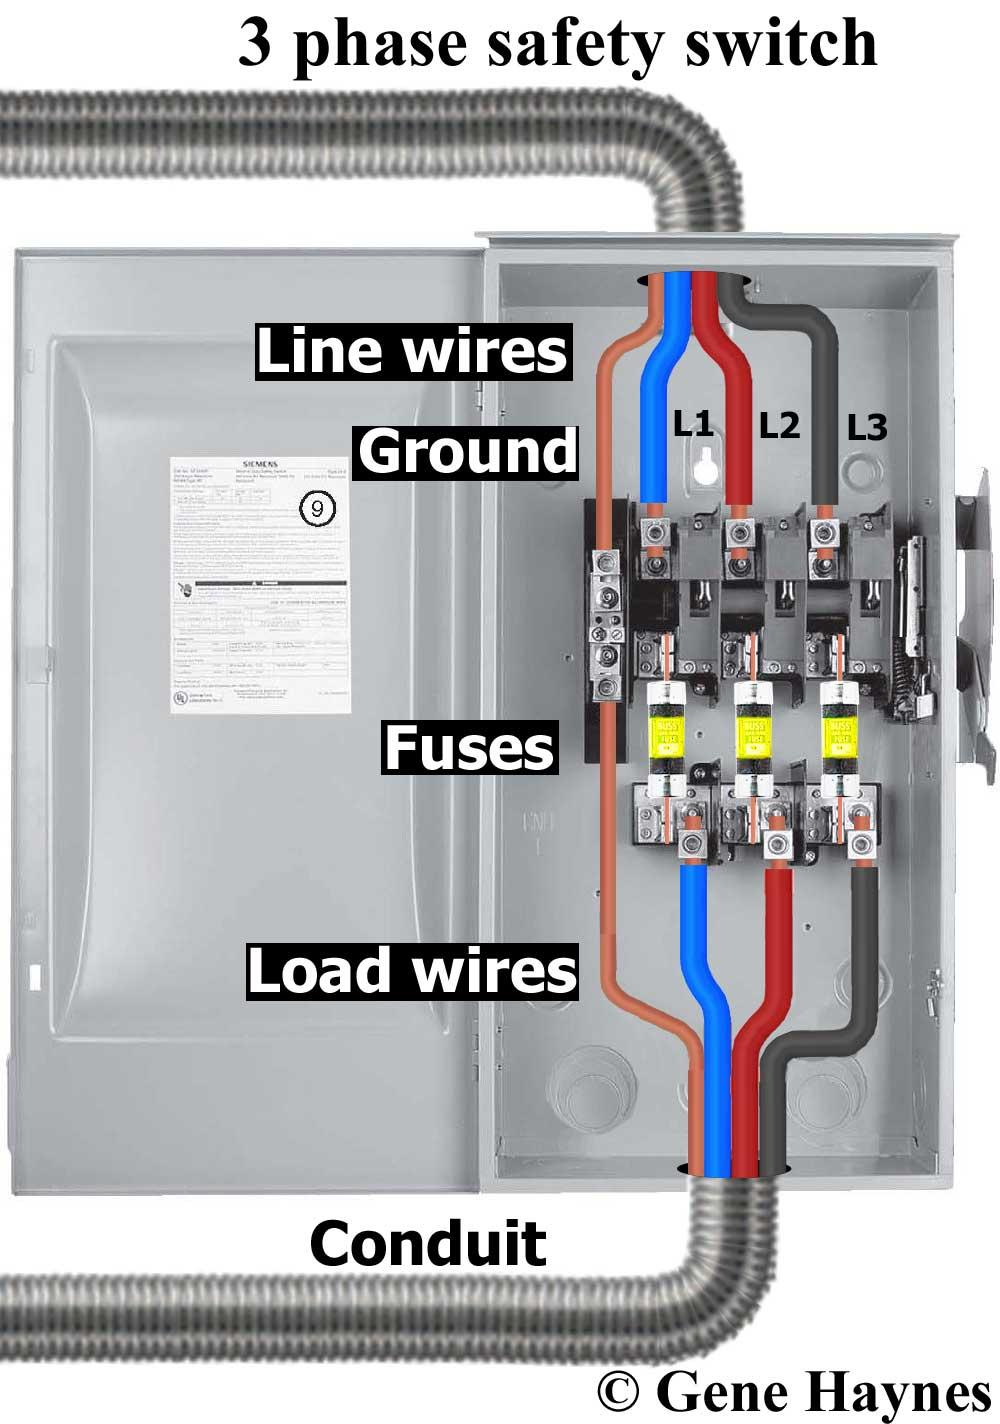 fuse switch wiring diagram air compressor 230v 1 phase ac disconnect for unfused schema diagramac non fused